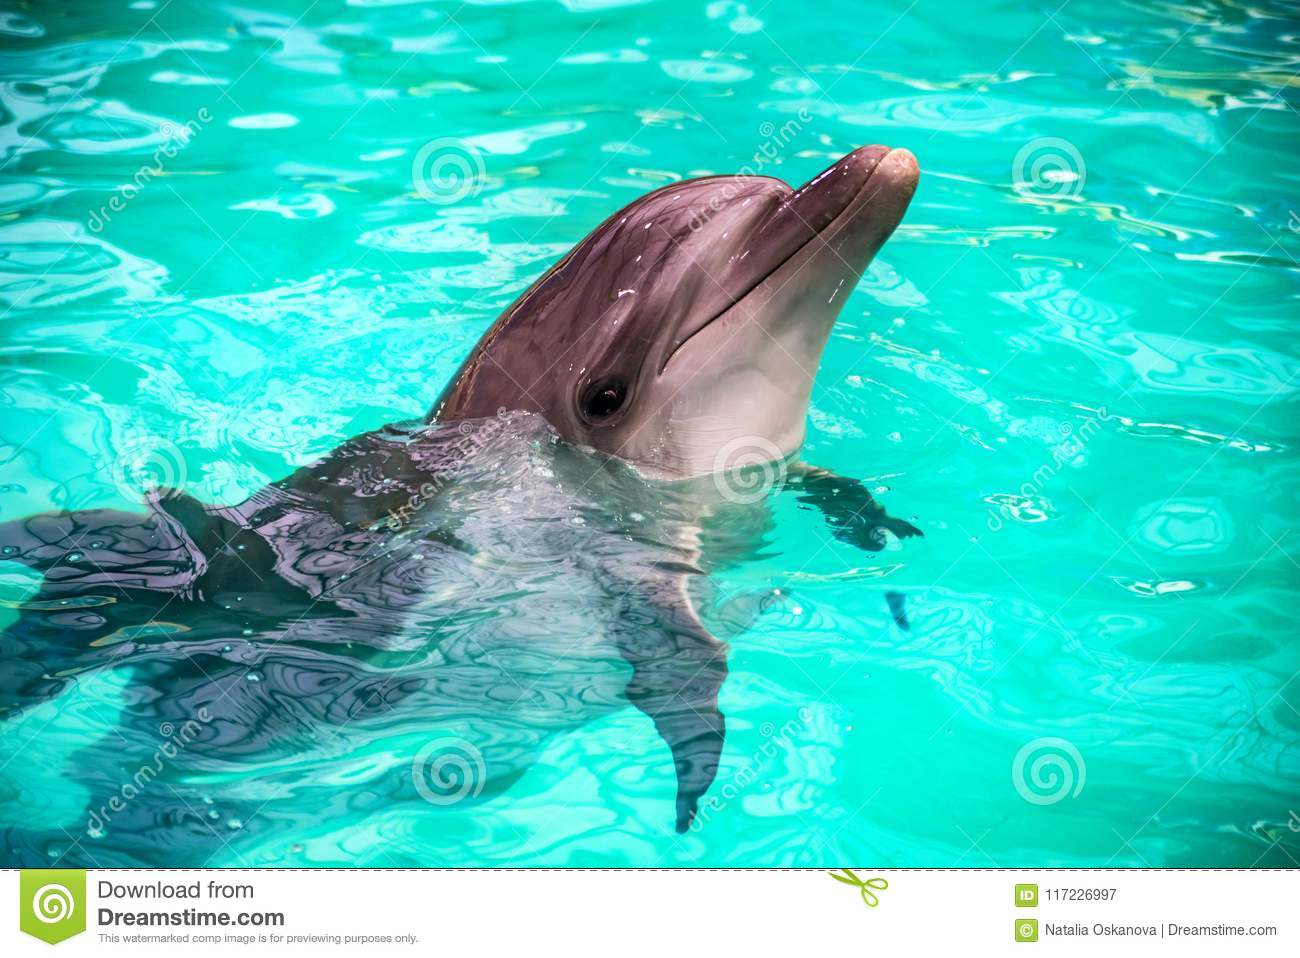 Cute Dolphins In Pool In Dolphinarium Stock Image - Image of ...